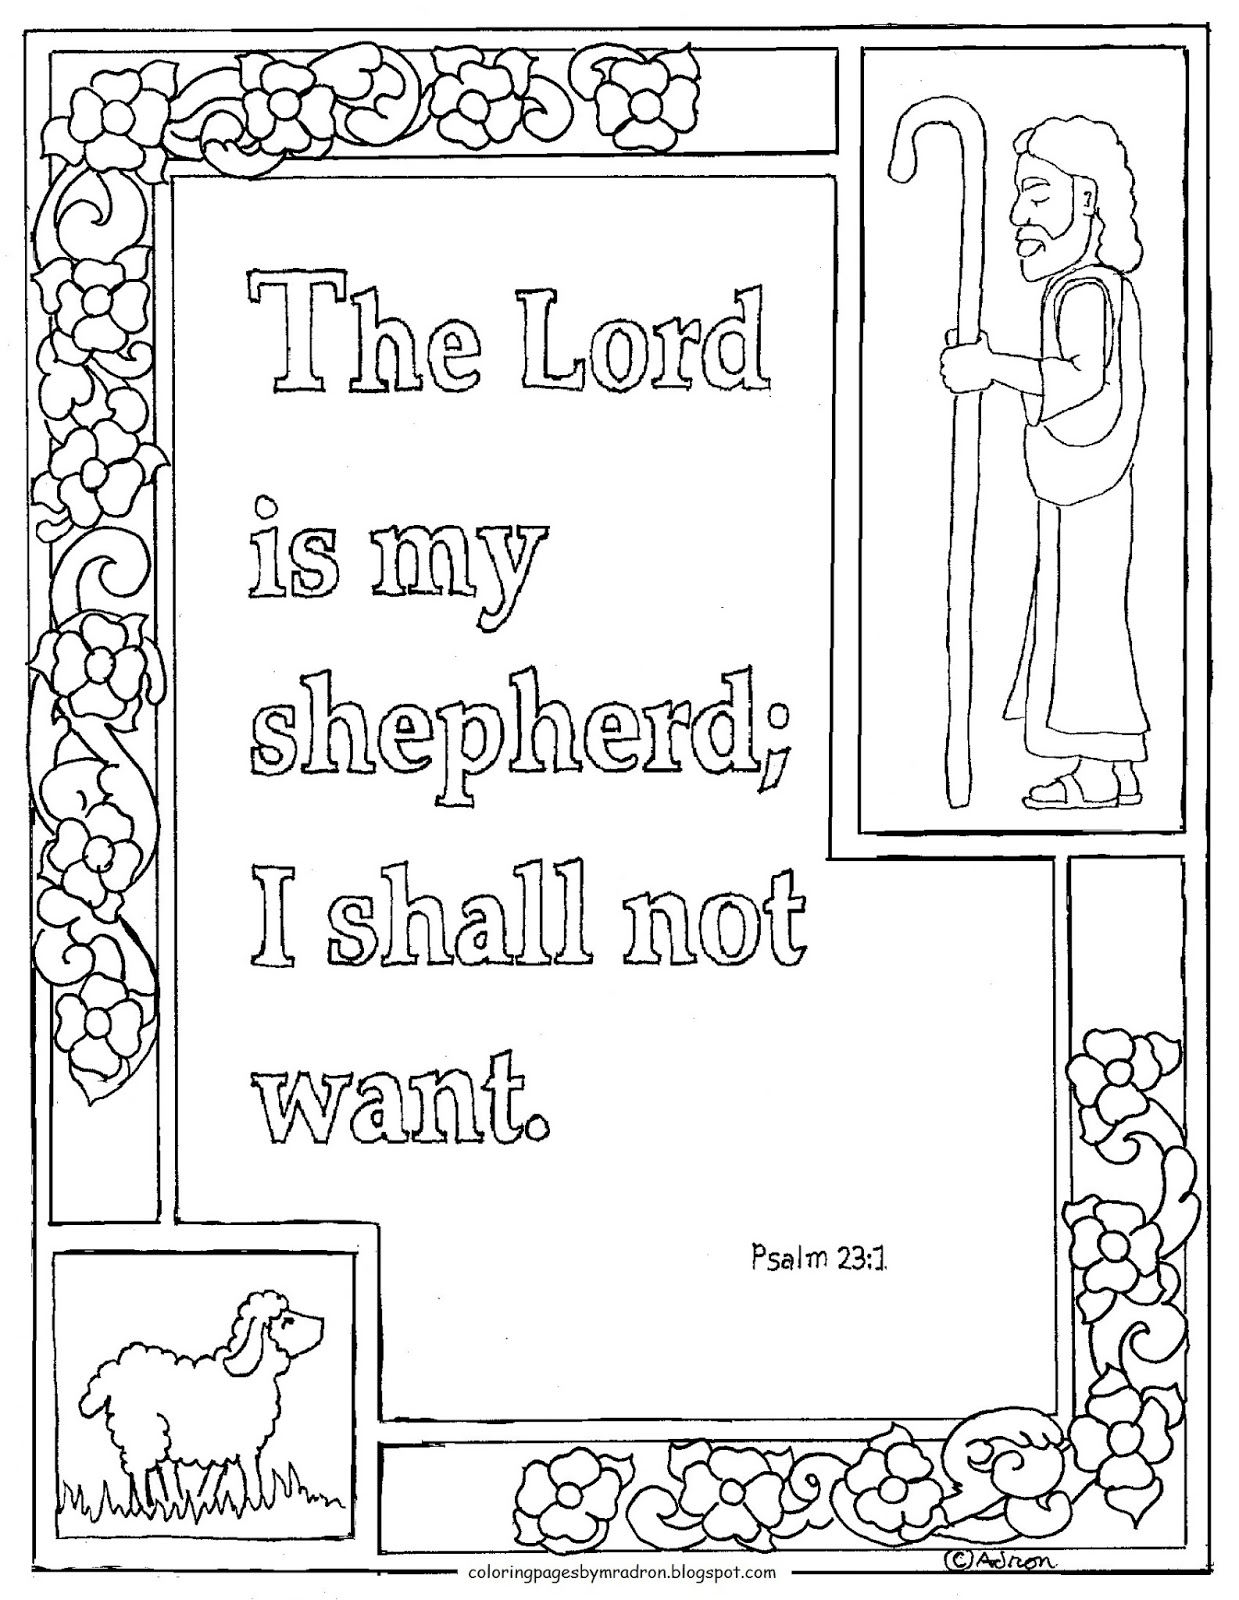 coloring psalm 1 psalms coloring pages at getcoloringscom free printable 1 psalm coloring